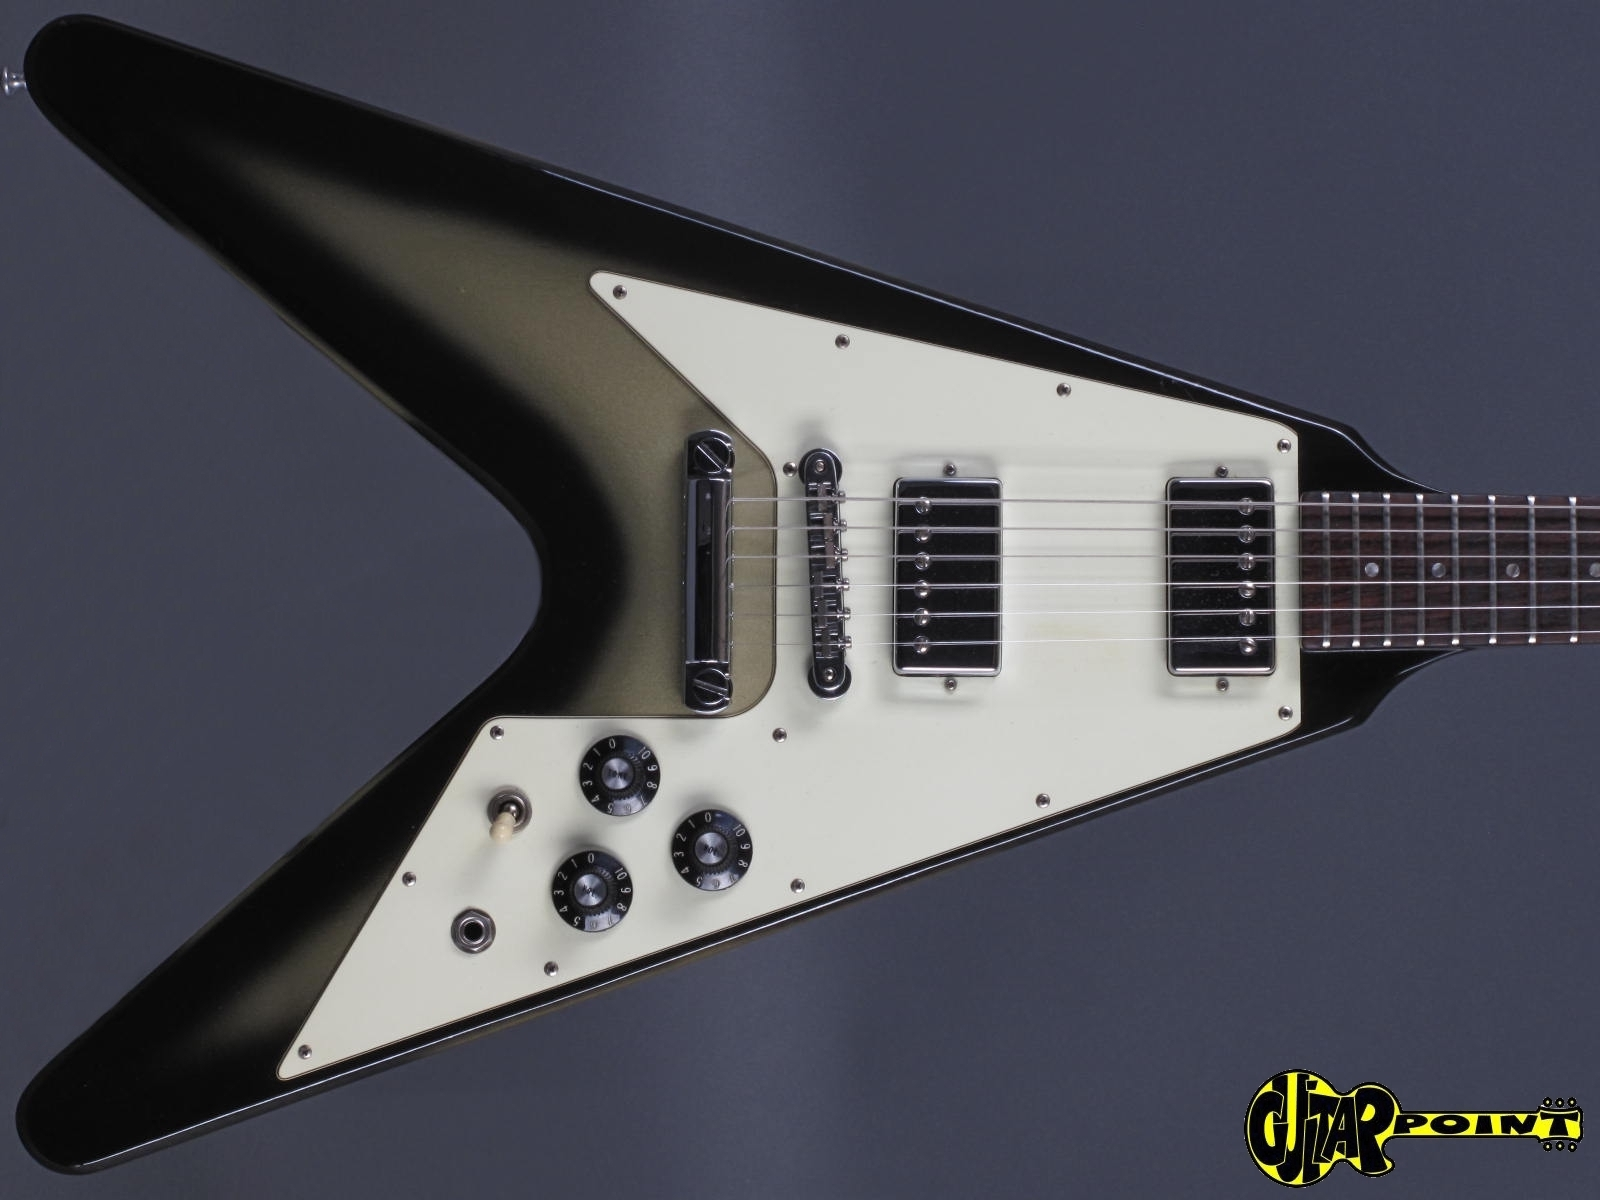 gibson flying v 1979 silverburst guitar for sale guitarpoint. Black Bedroom Furniture Sets. Home Design Ideas